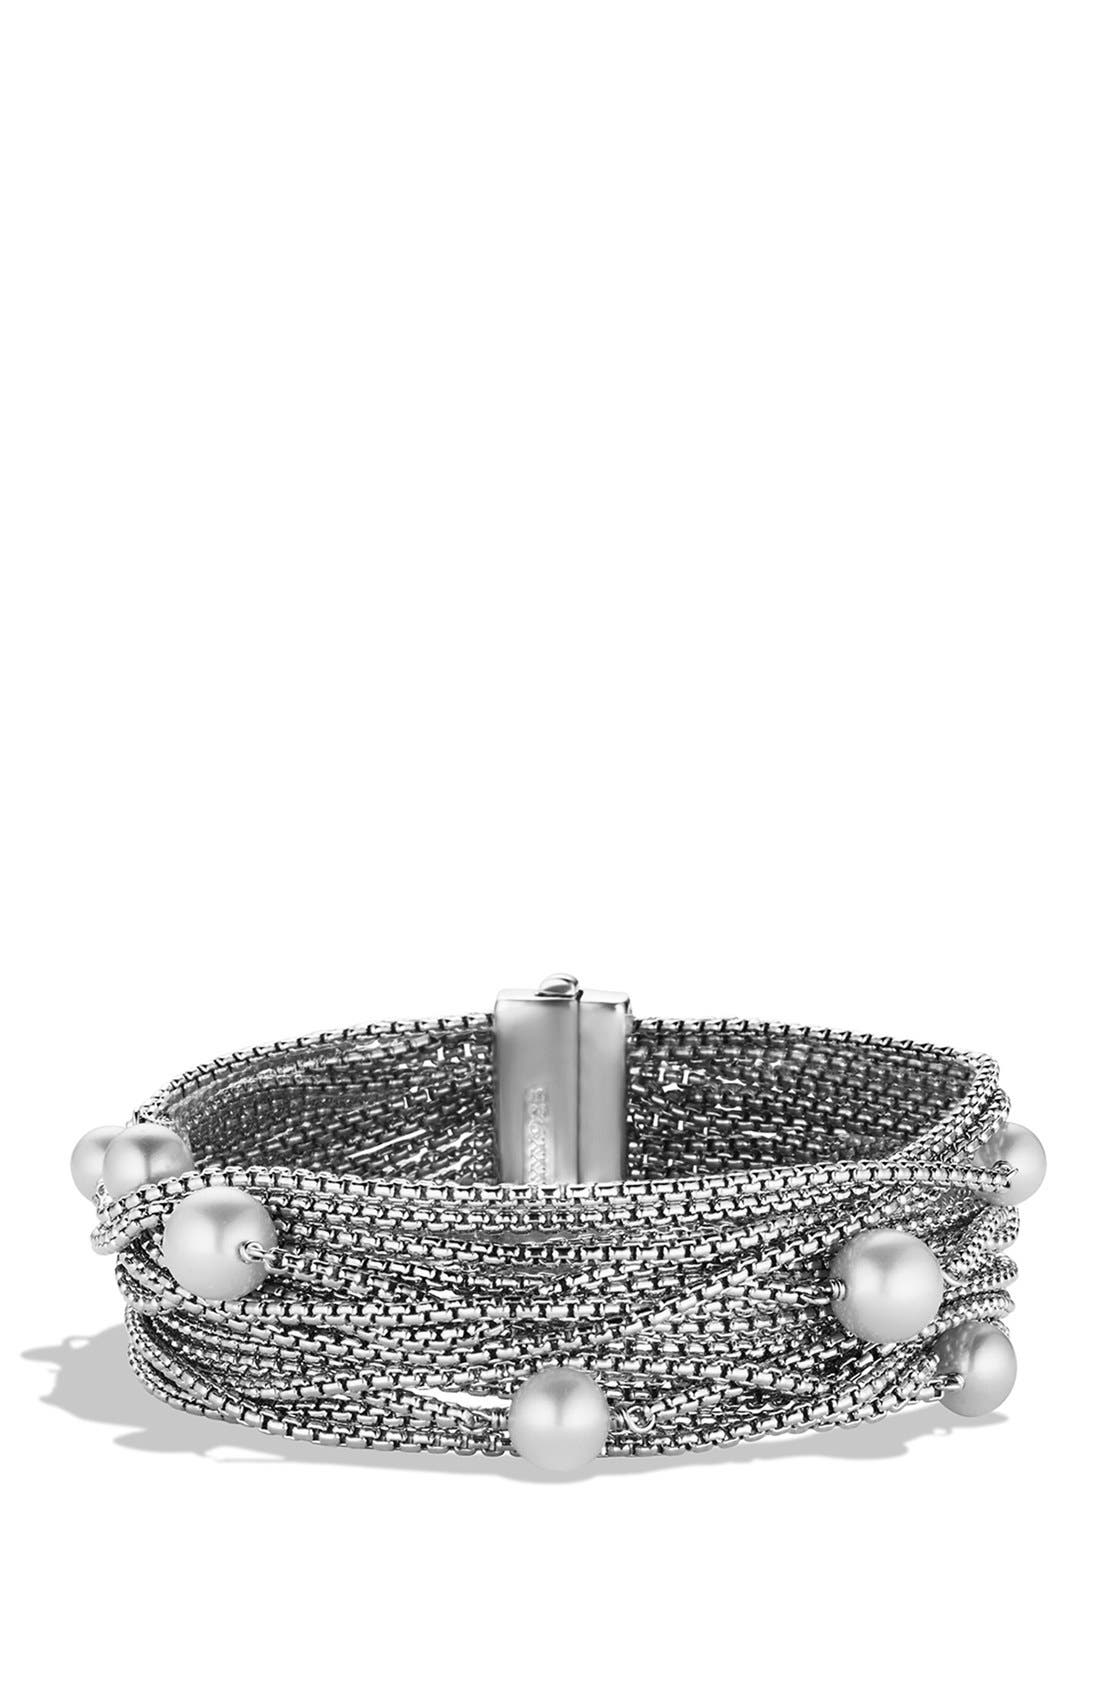 Alternate Image 1 Selected - David Yurman Sixteen-Row Chain Bracelet with Pearls